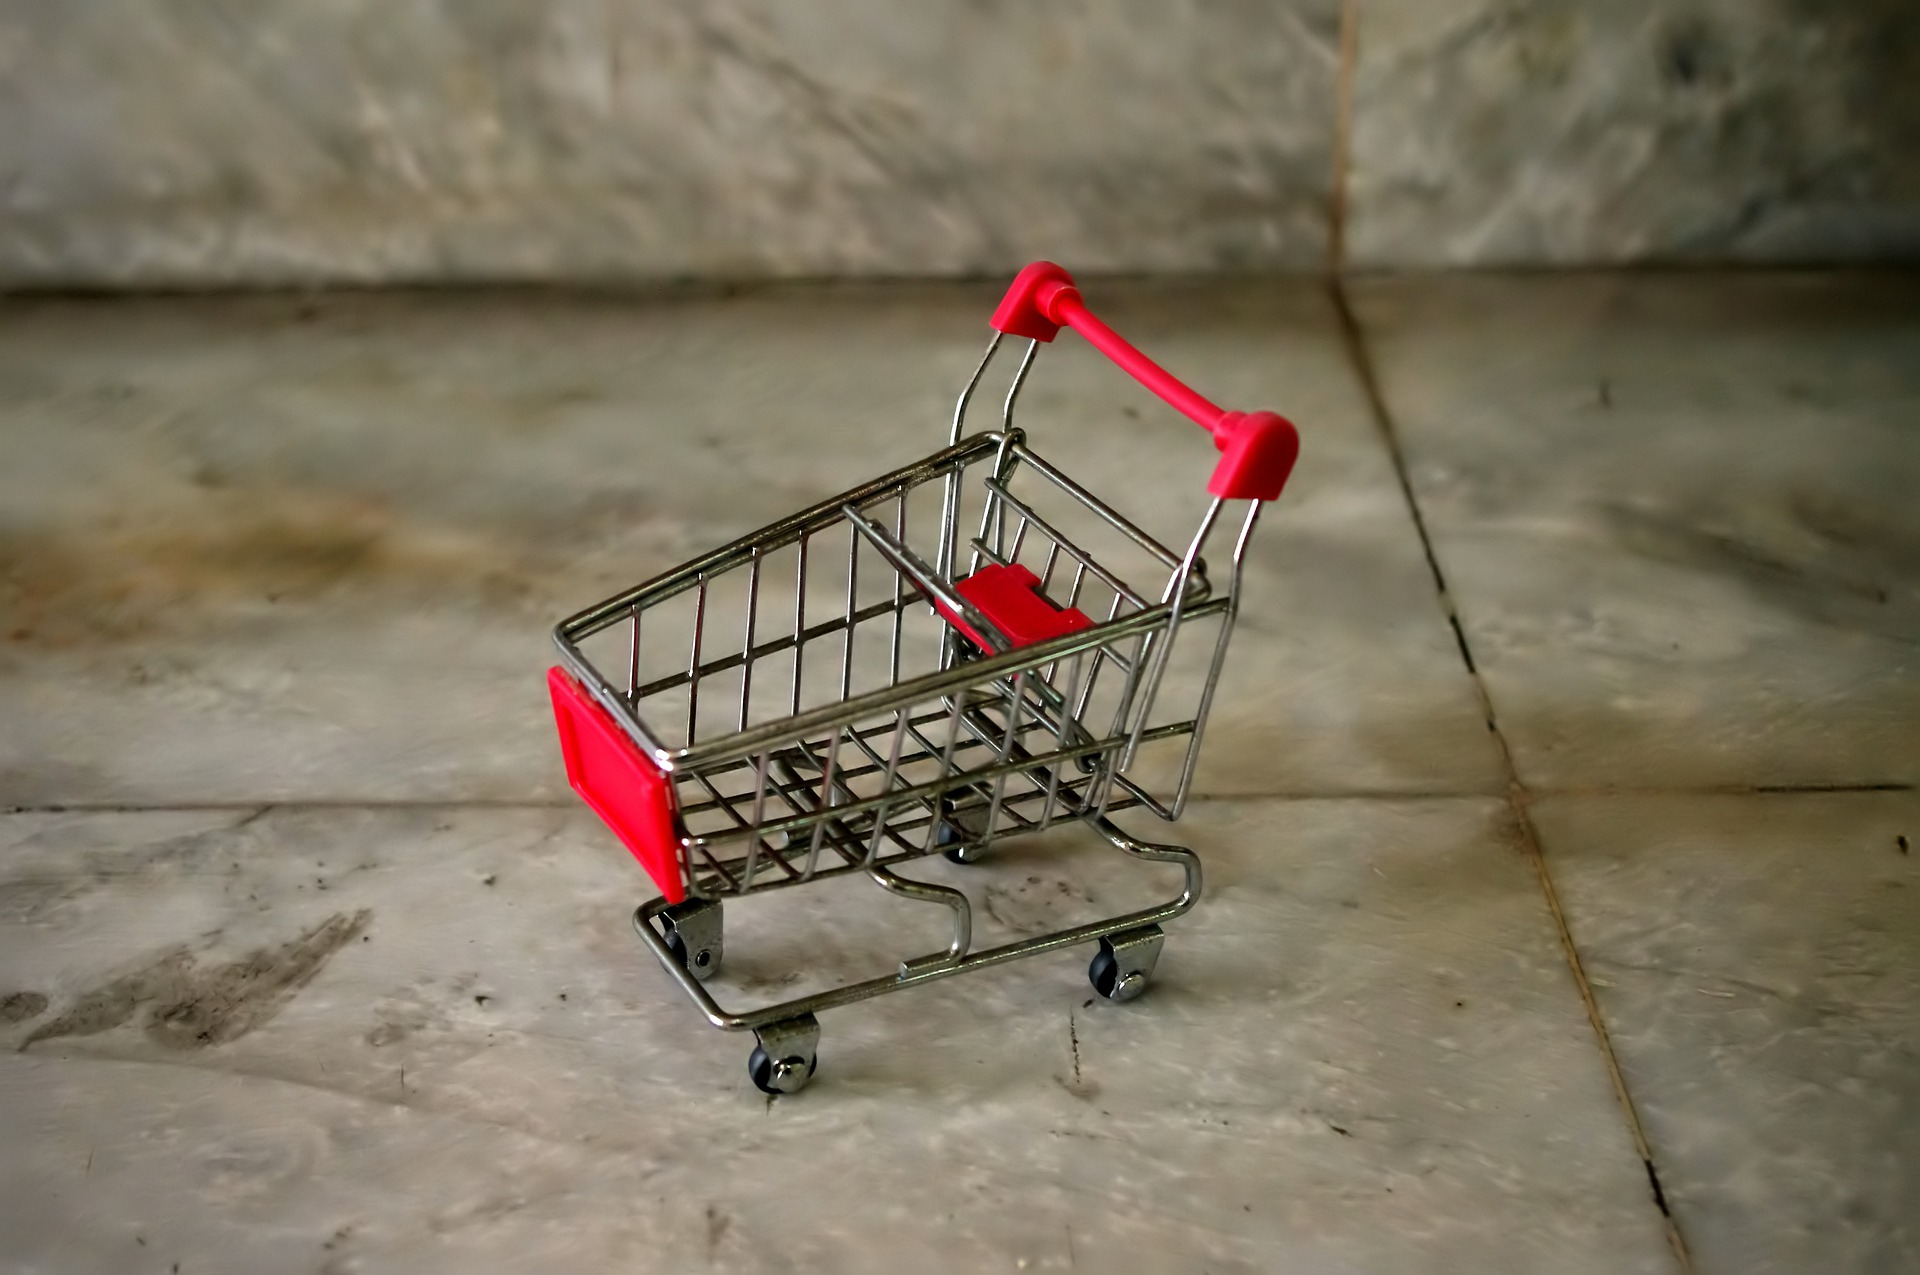 10 reasons for abandoned shopping carts